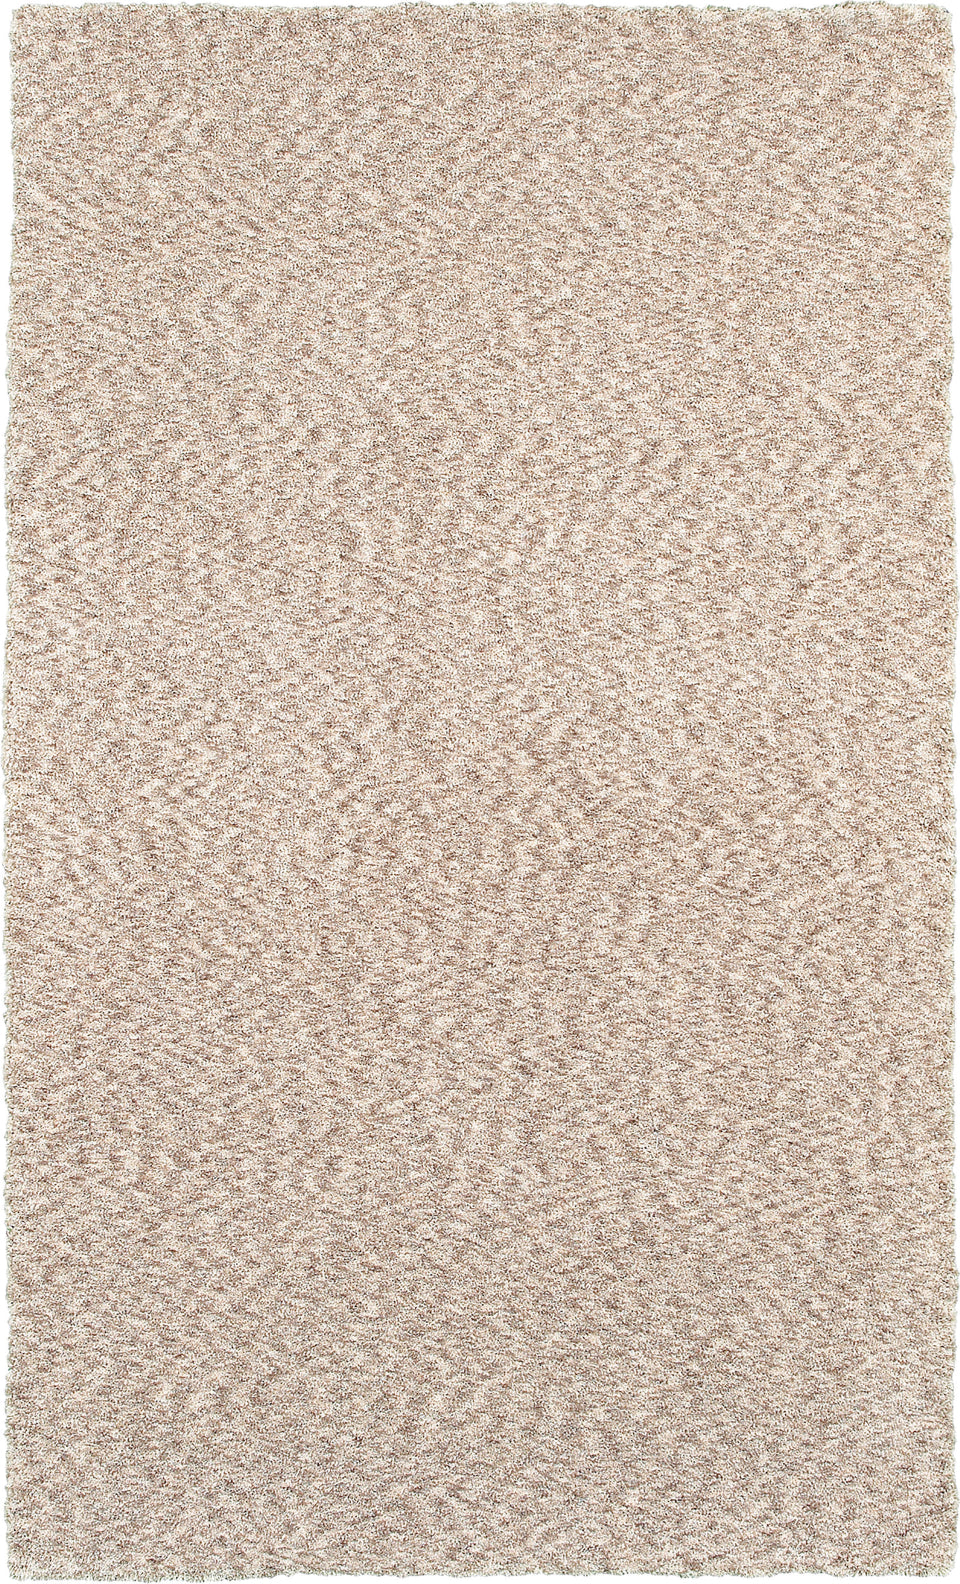 Oriental Weavers Heavenly 73401 Tan/Tan Area Rug main image